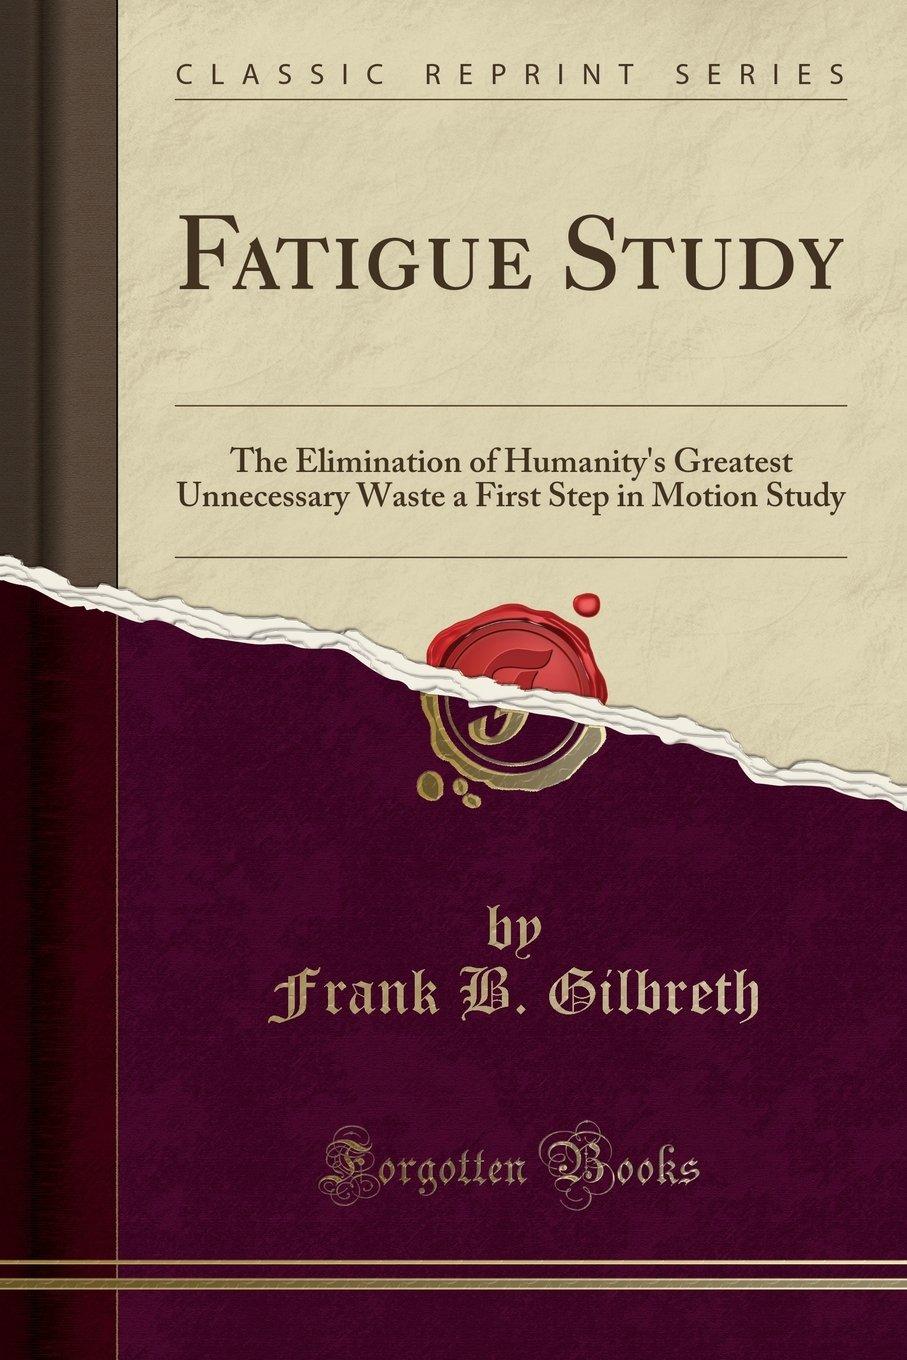 Study No Downside To Eliminating >> Fatigue Study The Elimination Of Humanity S Greatest Unnecessary